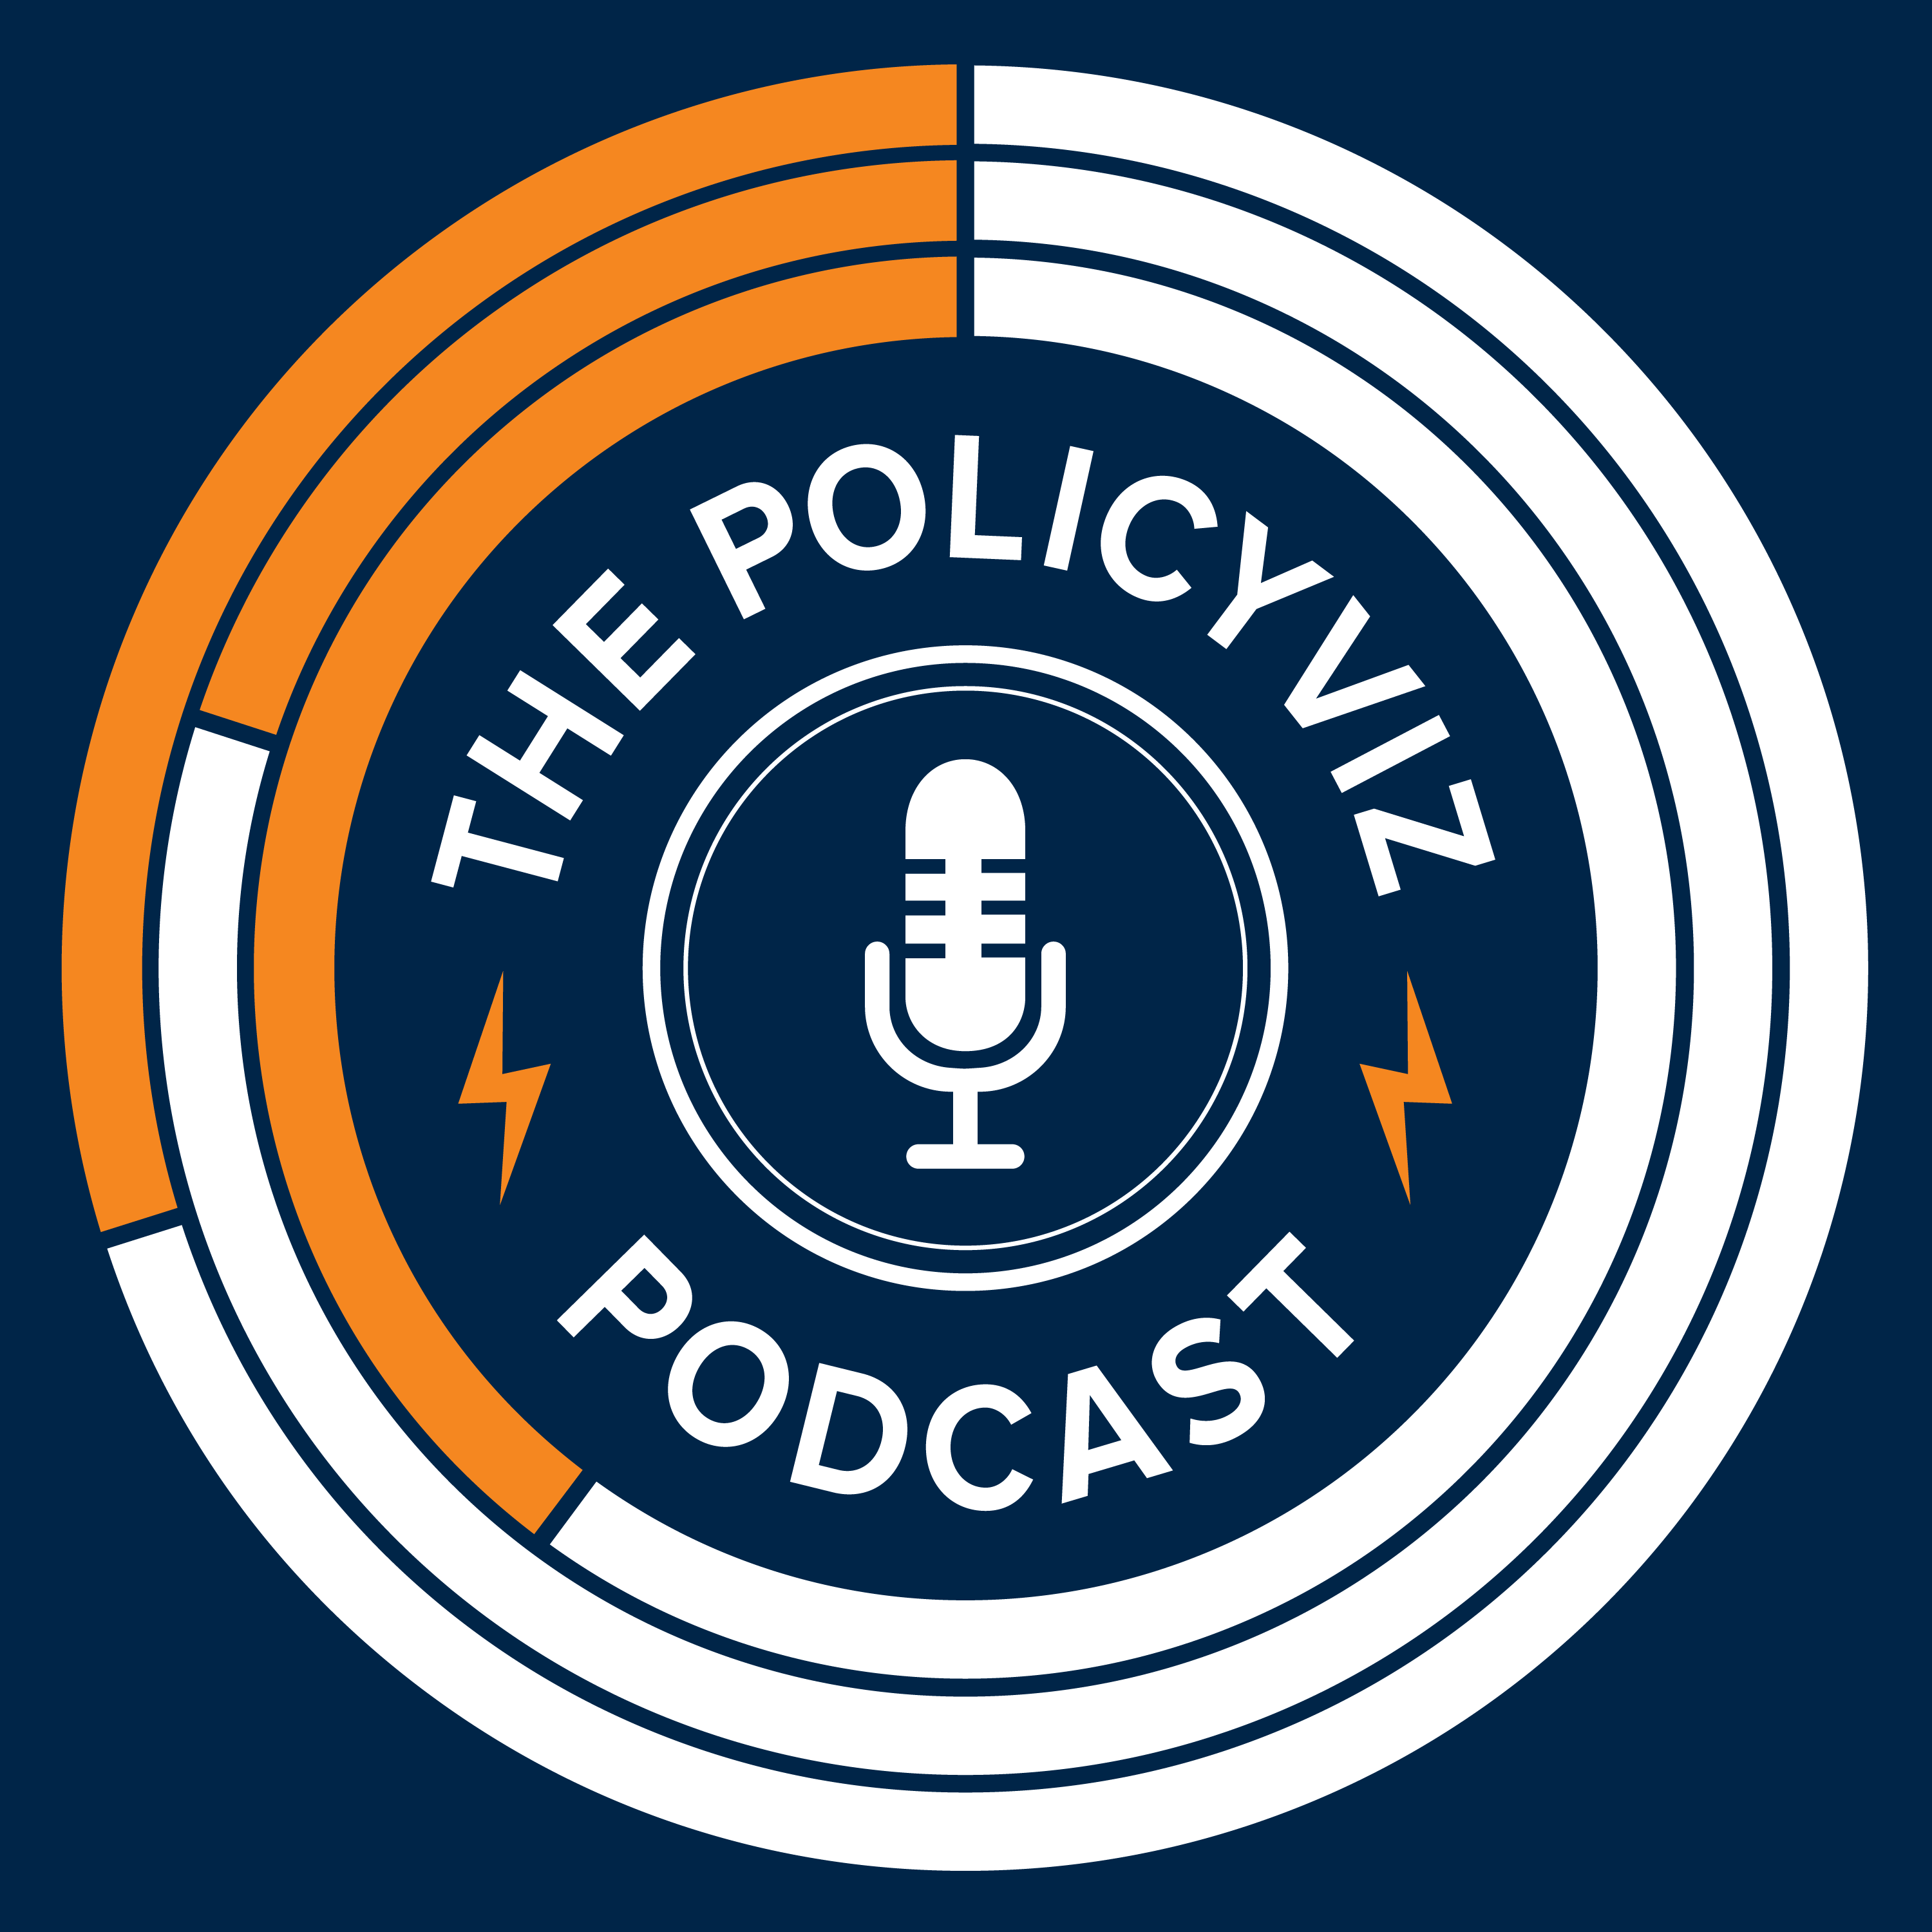 The PolicyViz podcast logo, which is navy, orange, and white, and features a microphone in the center.